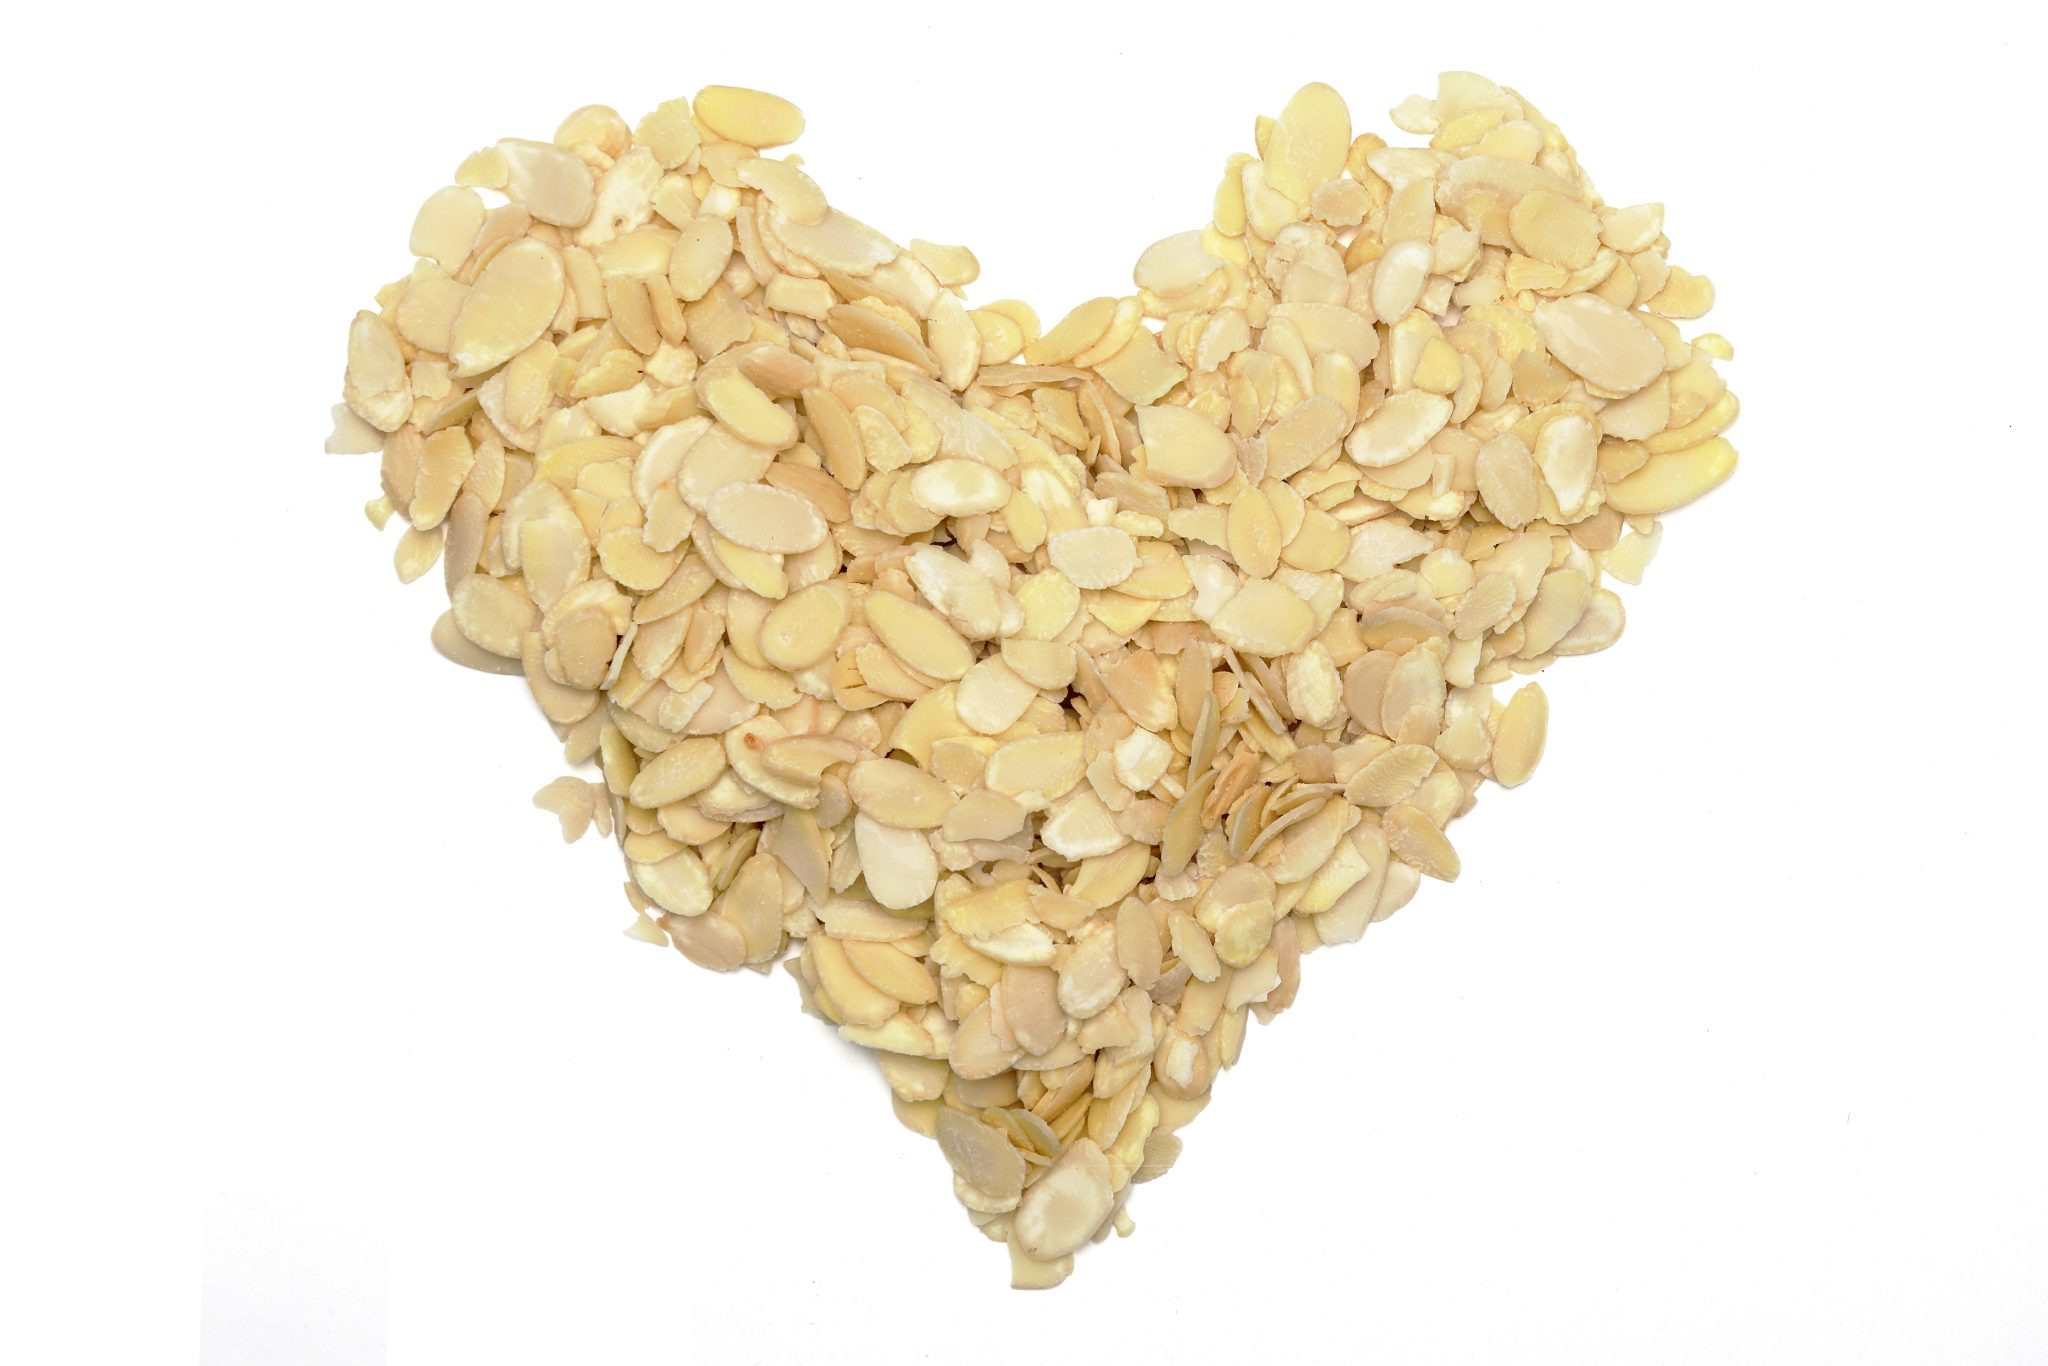 chandras blanched sliced almonds in a heart shape